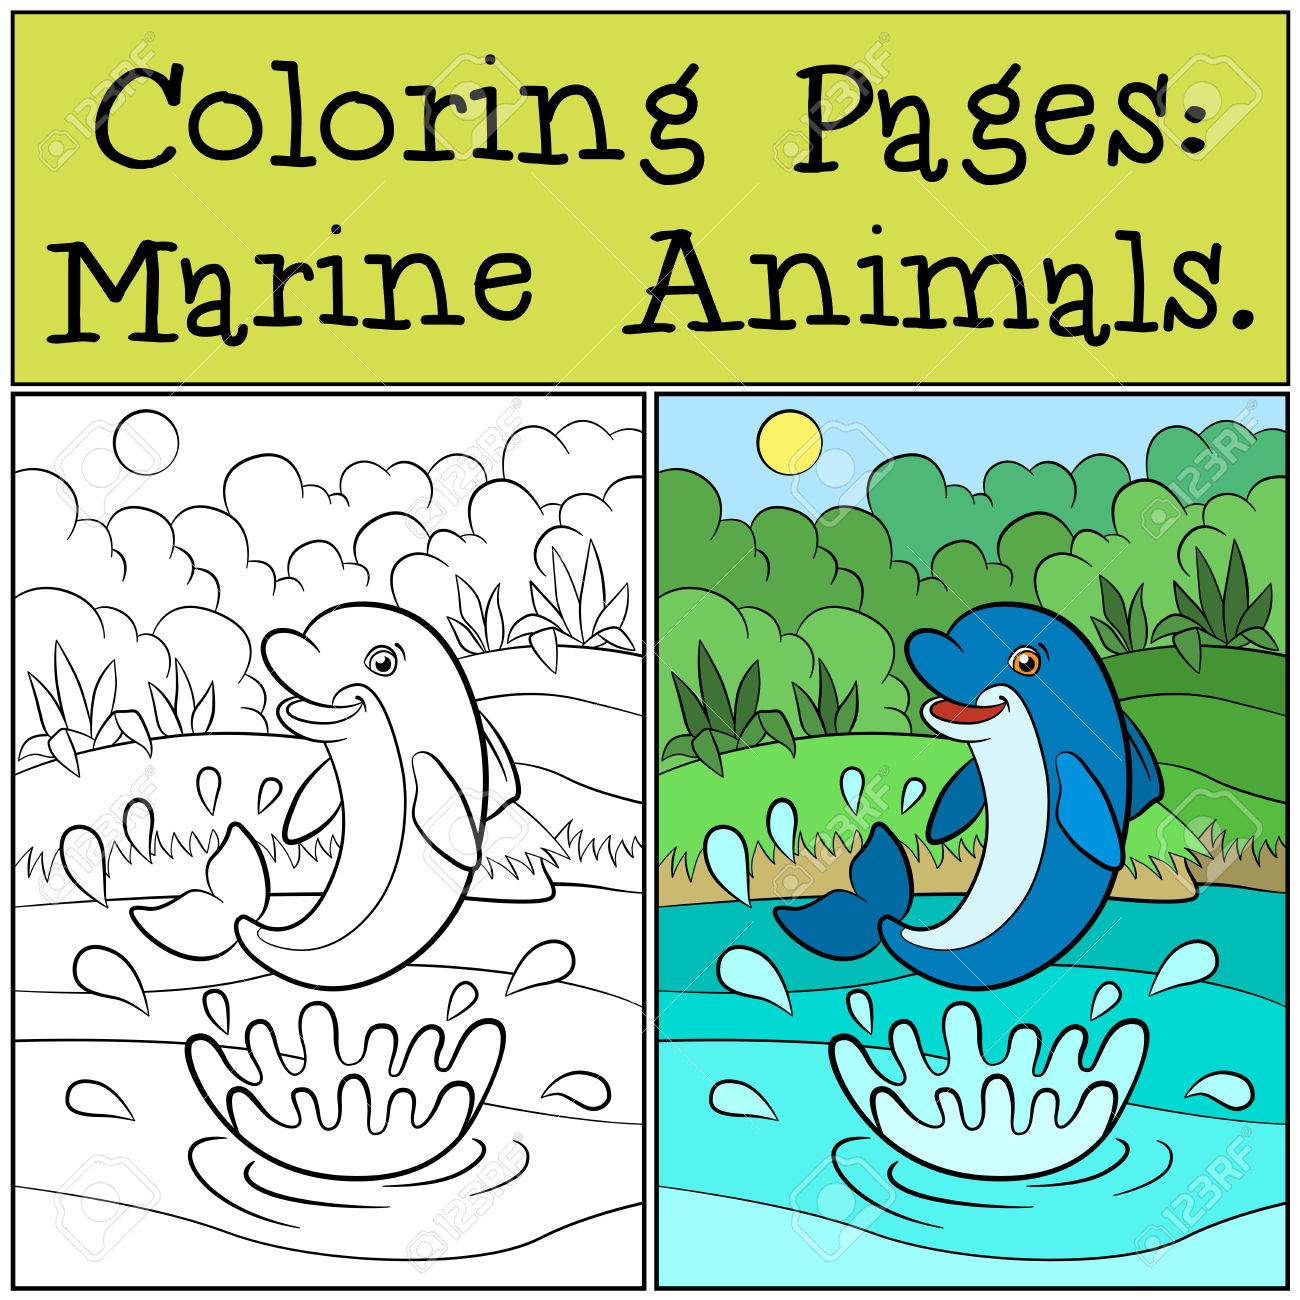 Coloring Pages: Marine Animals. Little Cute Dolphin Jumps Out ...